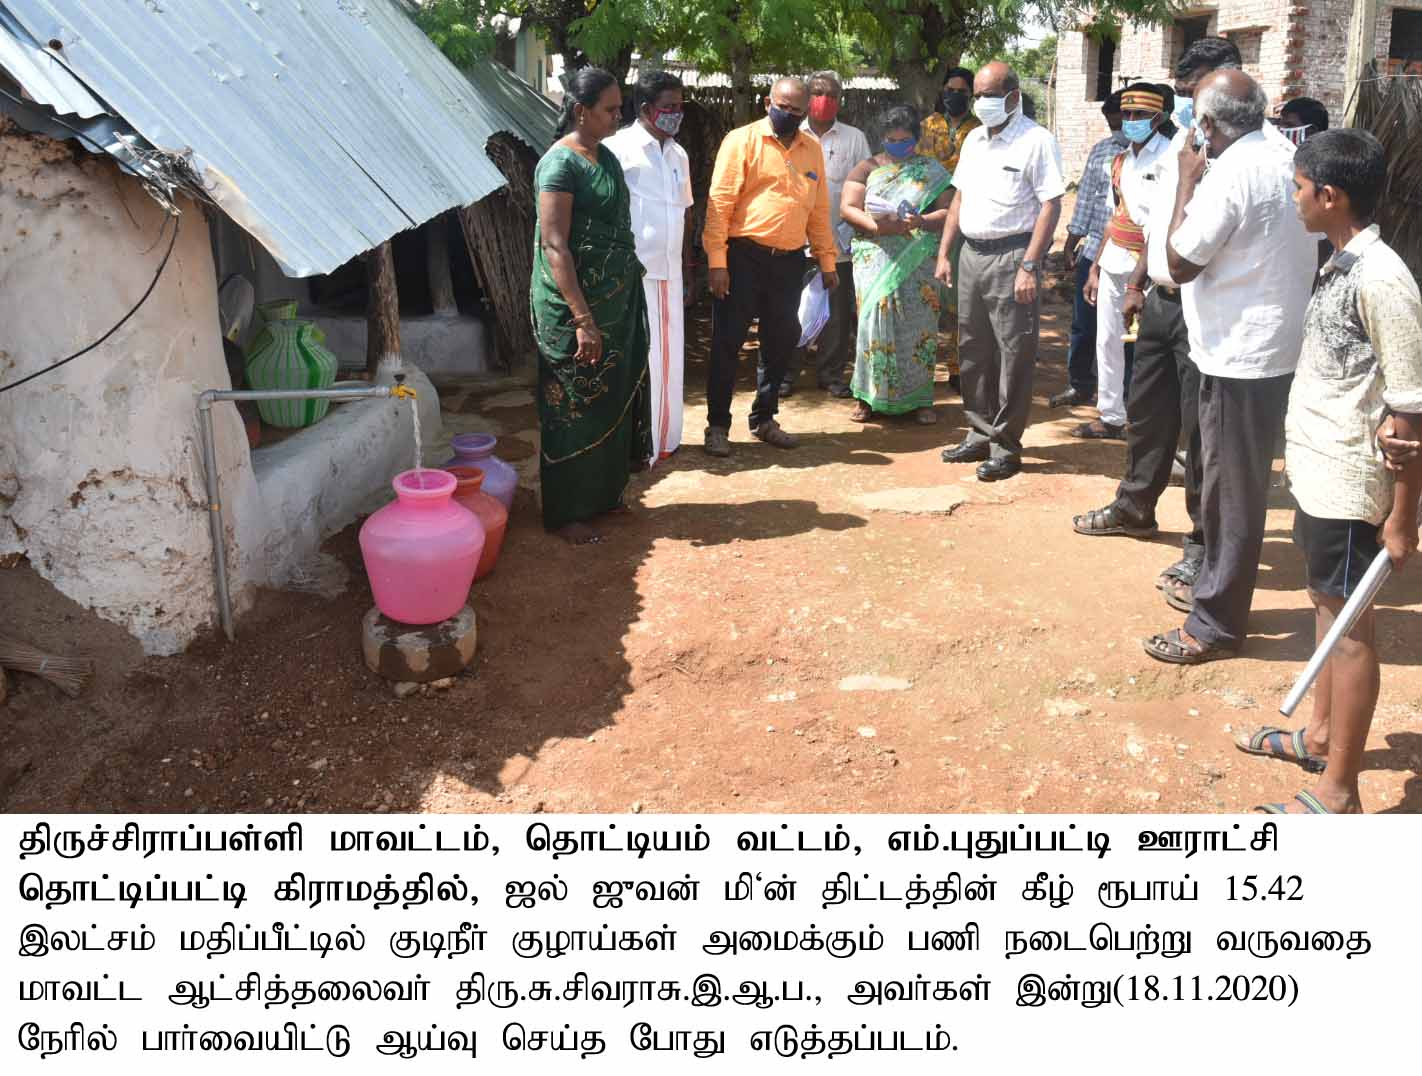 District Collector Inspected the Jal Jeevan Mission Project work at Thottiyam Block on 18.11.2020